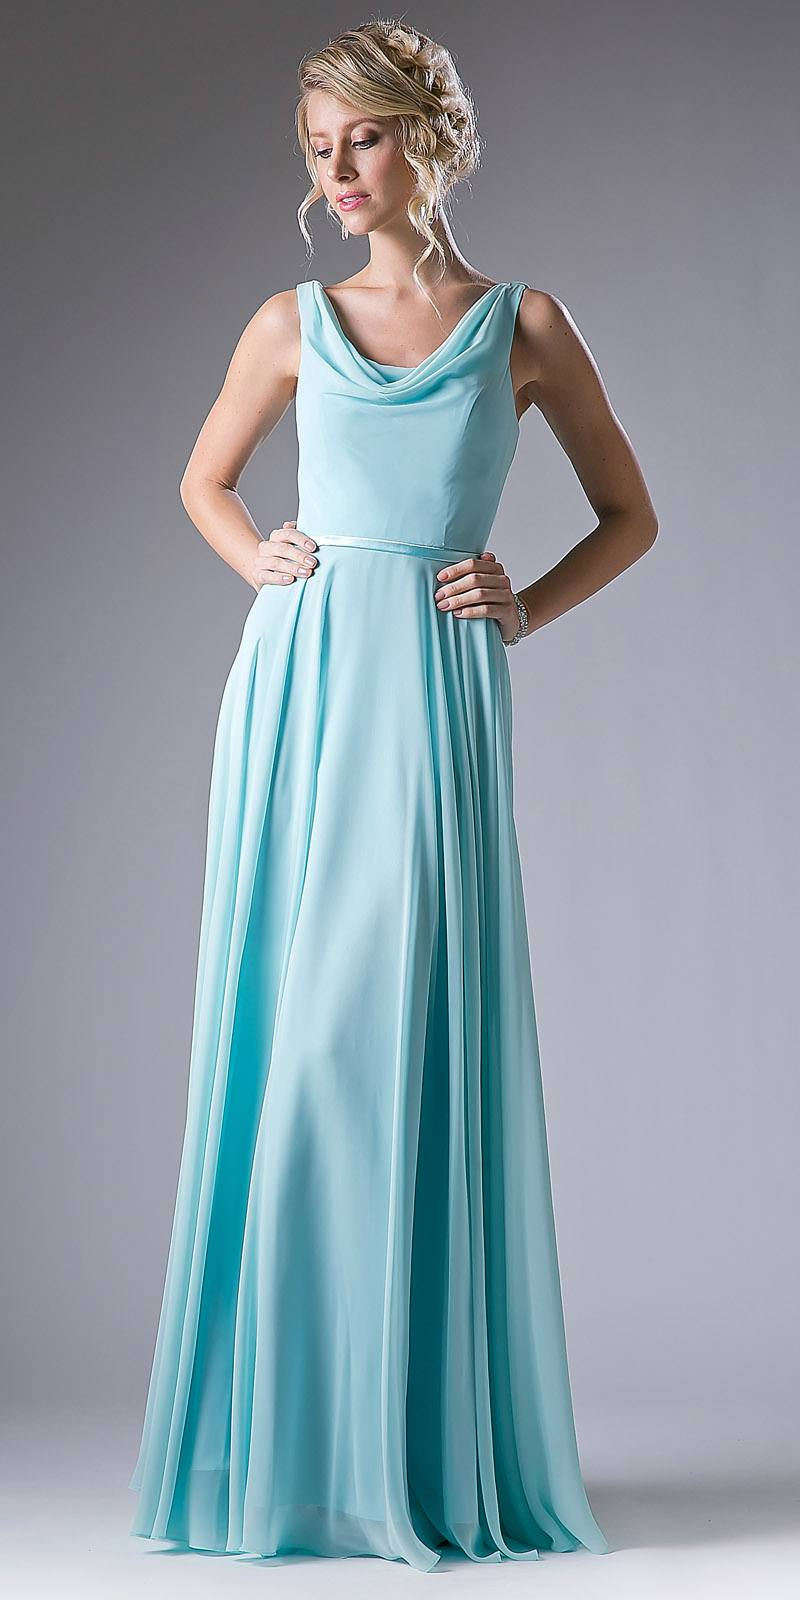 Mint Sleeveless Floor Length Formal Dress with Cowl Neck and Back